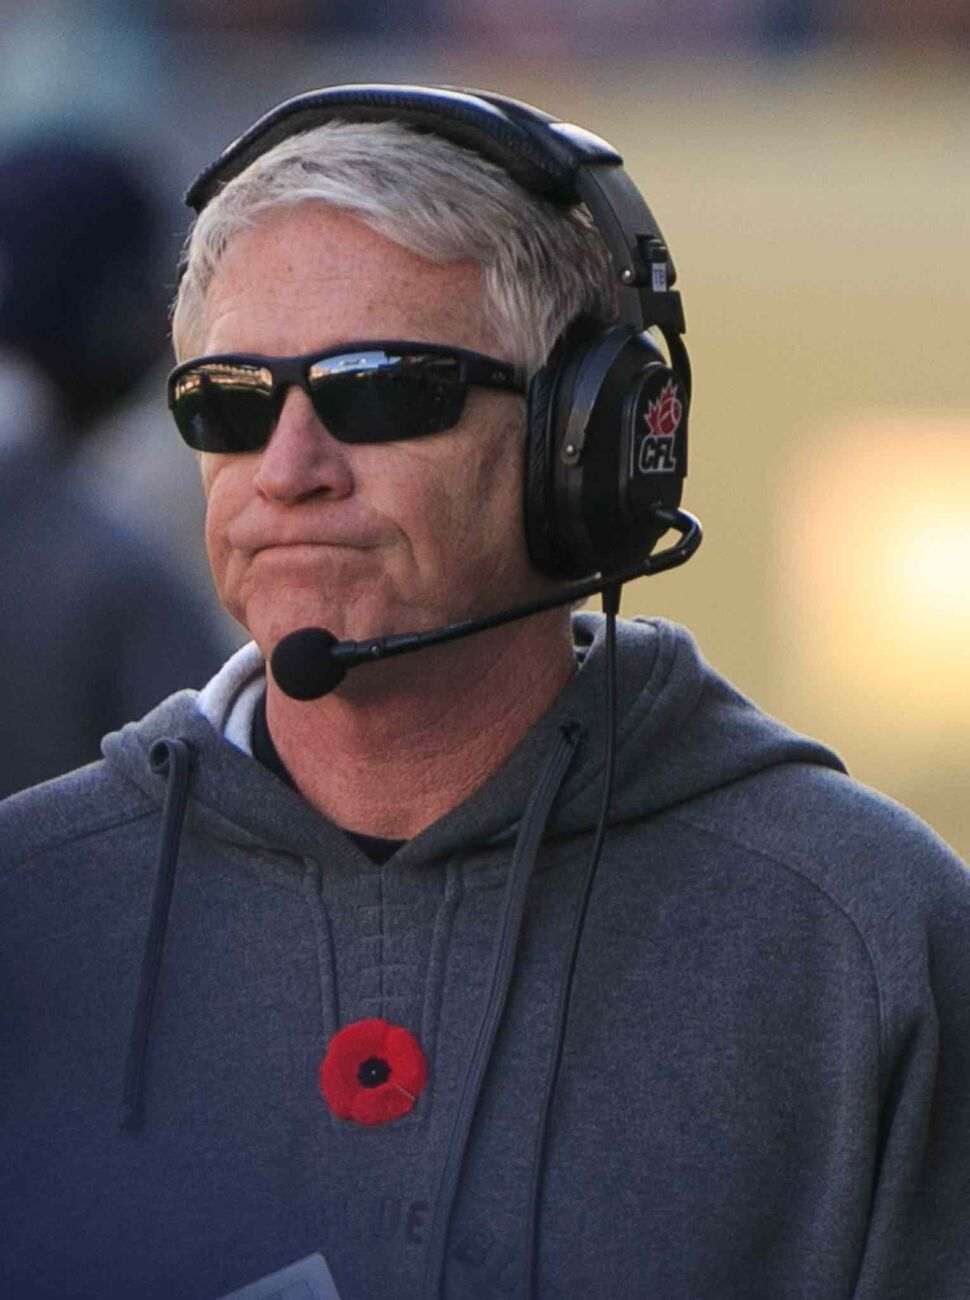 Bombers' head coach Tim Burke looks on near the end of another Blue Bombers loss at Investors Group Field. (Melissa Tait / Winnipeg Free Press)